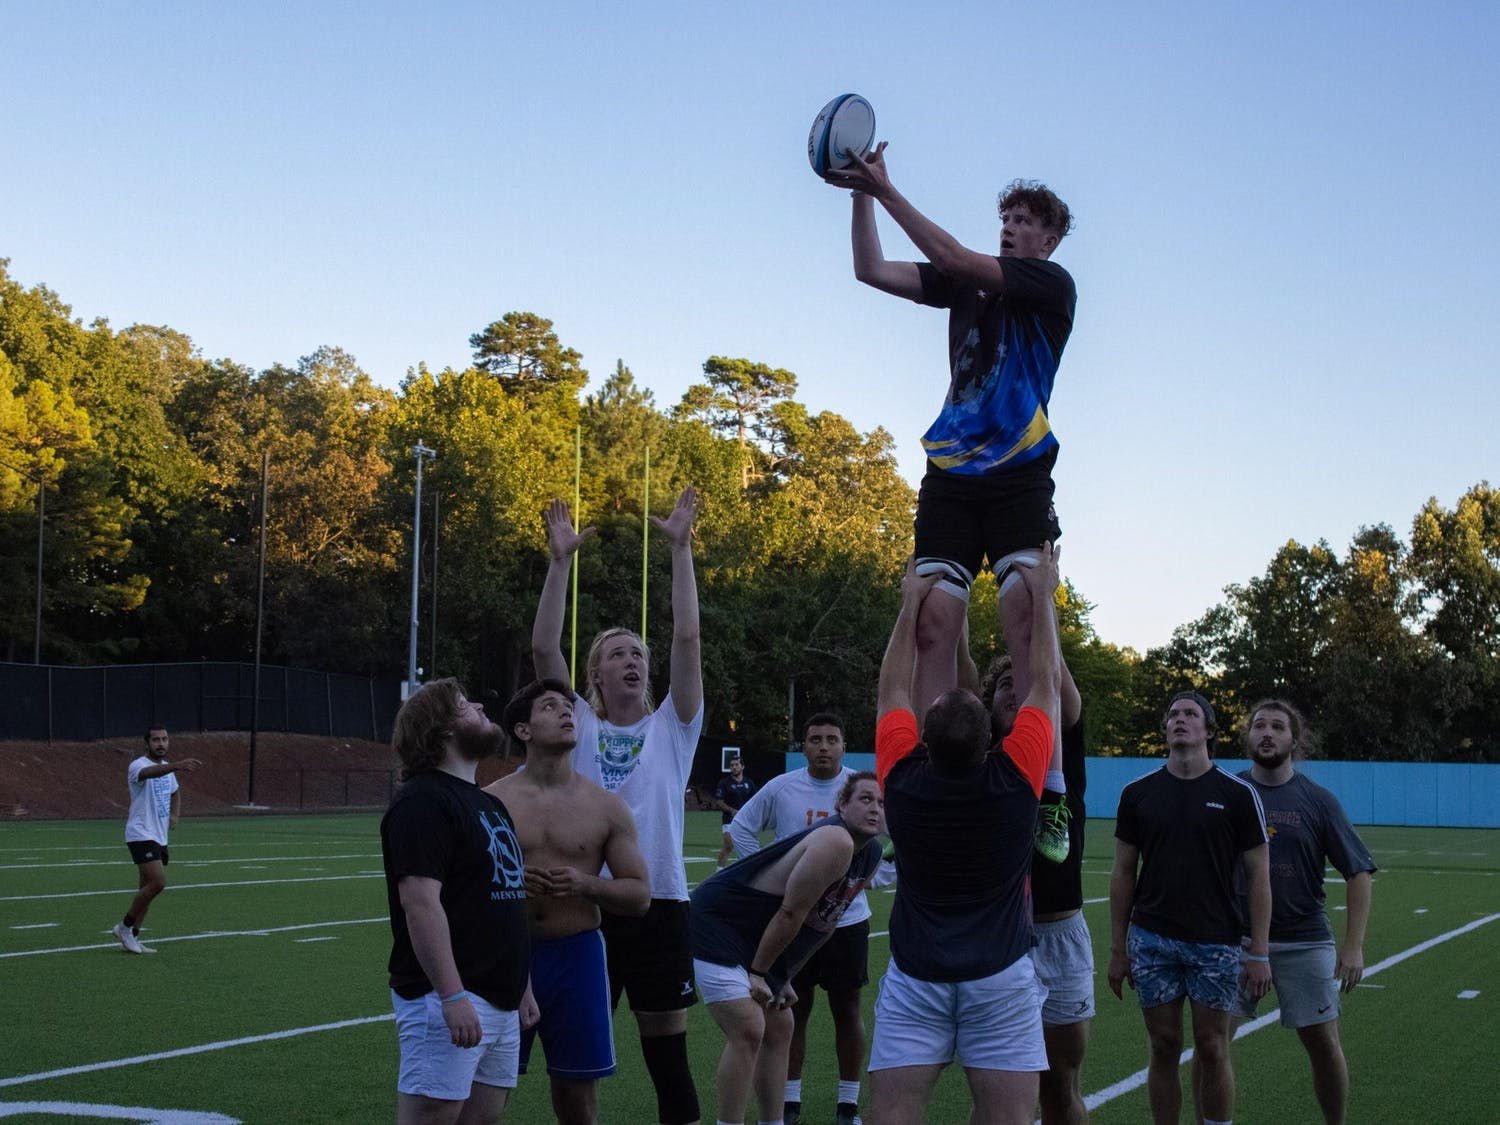 """Sophomore Club Player Matt Warren catches the ball in a lineout at the UNC-CH Men's Rugby Football Club practice on Sept. 23. When asked about his time on the team, Warren responded, """"it gives guys community and family."""""""